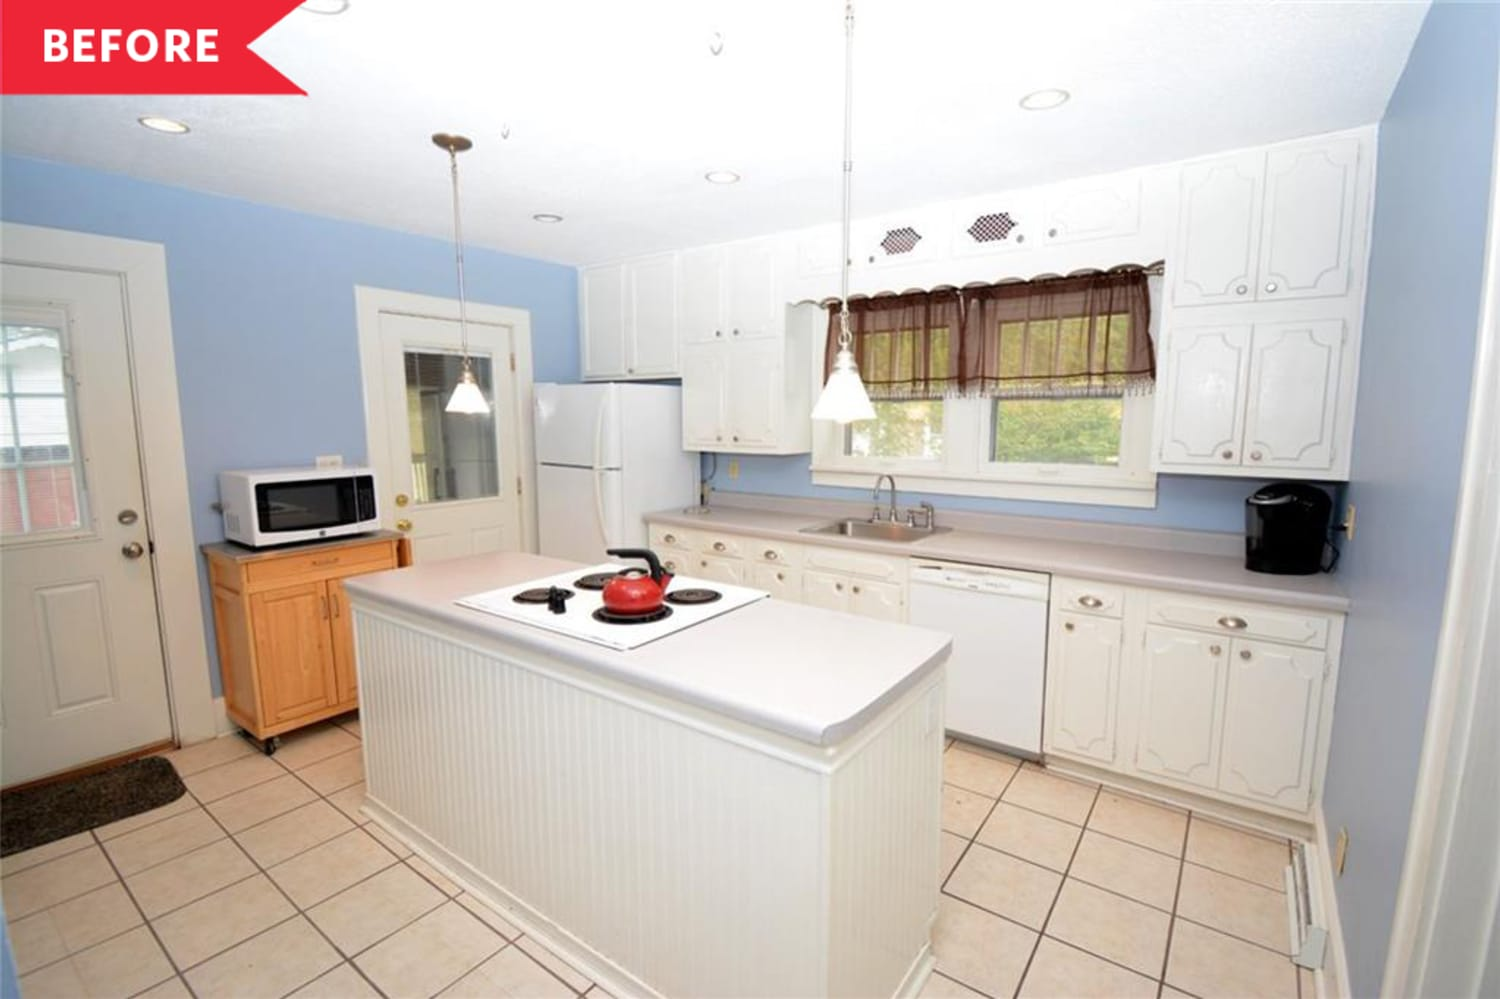 Before & After: House Flippers Completely Transformed an Outdated Iowa Kitchen